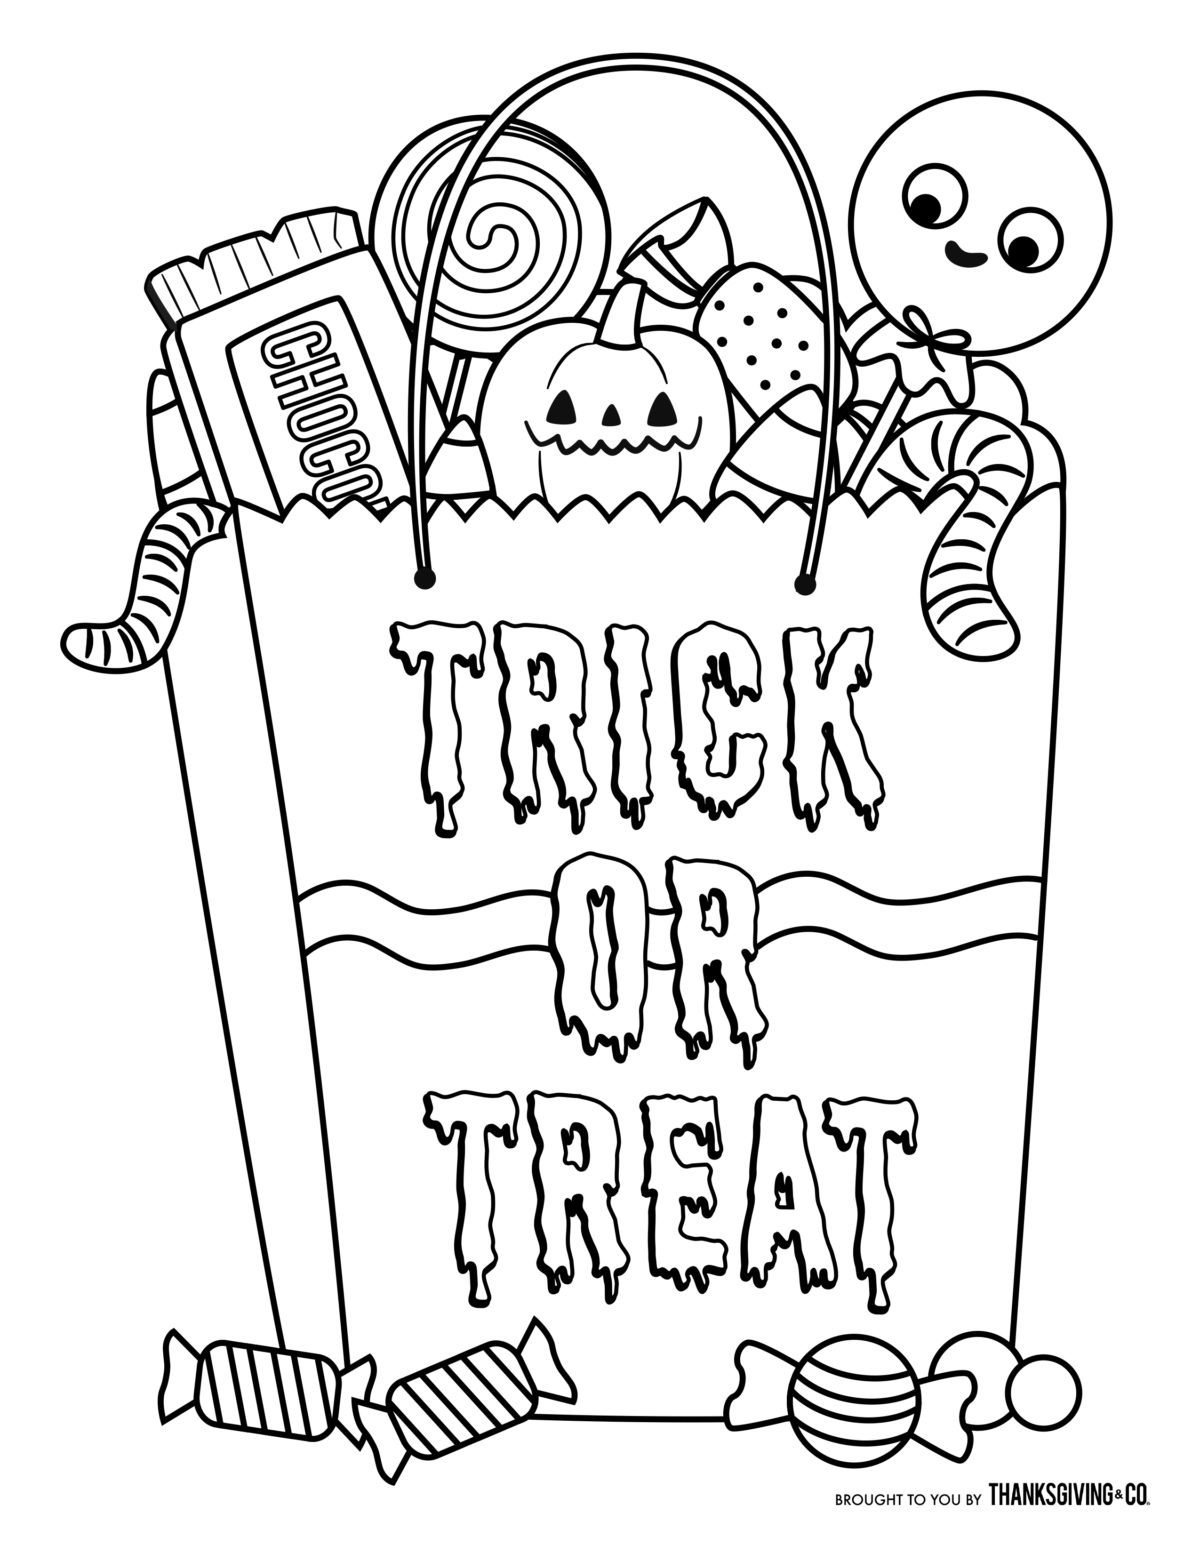 Coloring Ideas : Coloring Ideas Freeloween Pages Page Fabulous For - Free Online Printable Halloween Coloring Pages